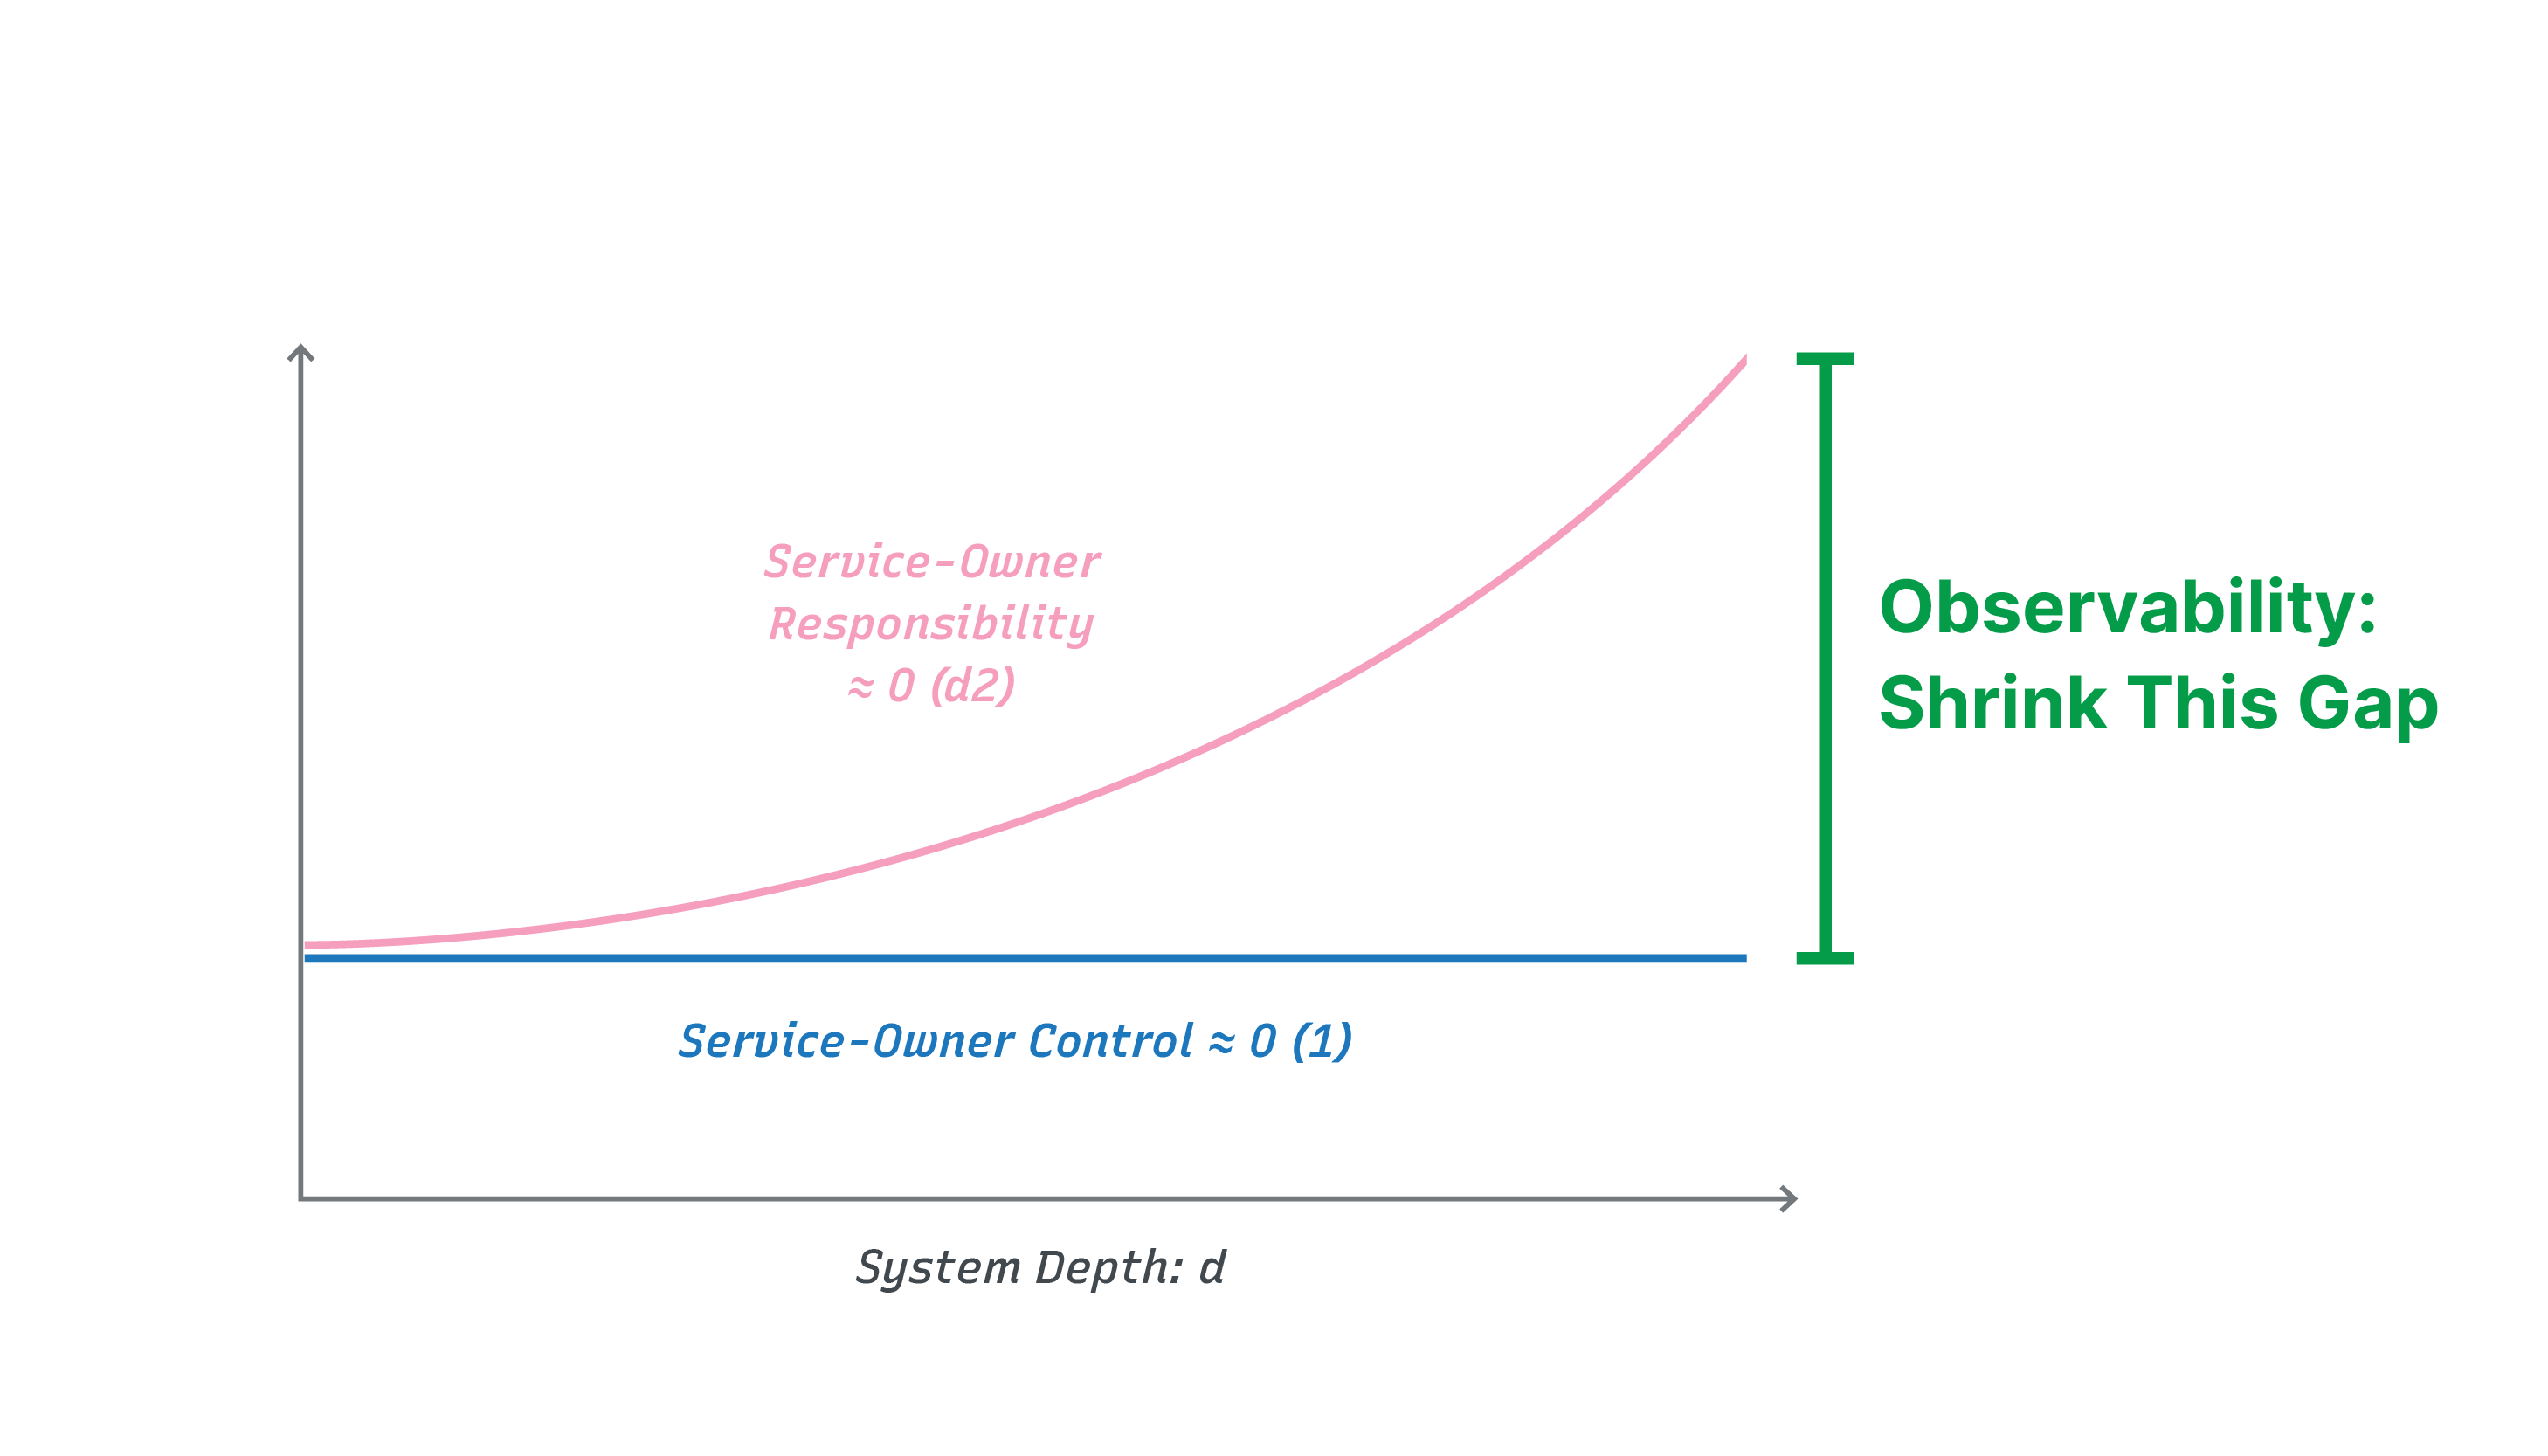 Deep Systems Graph for Observability